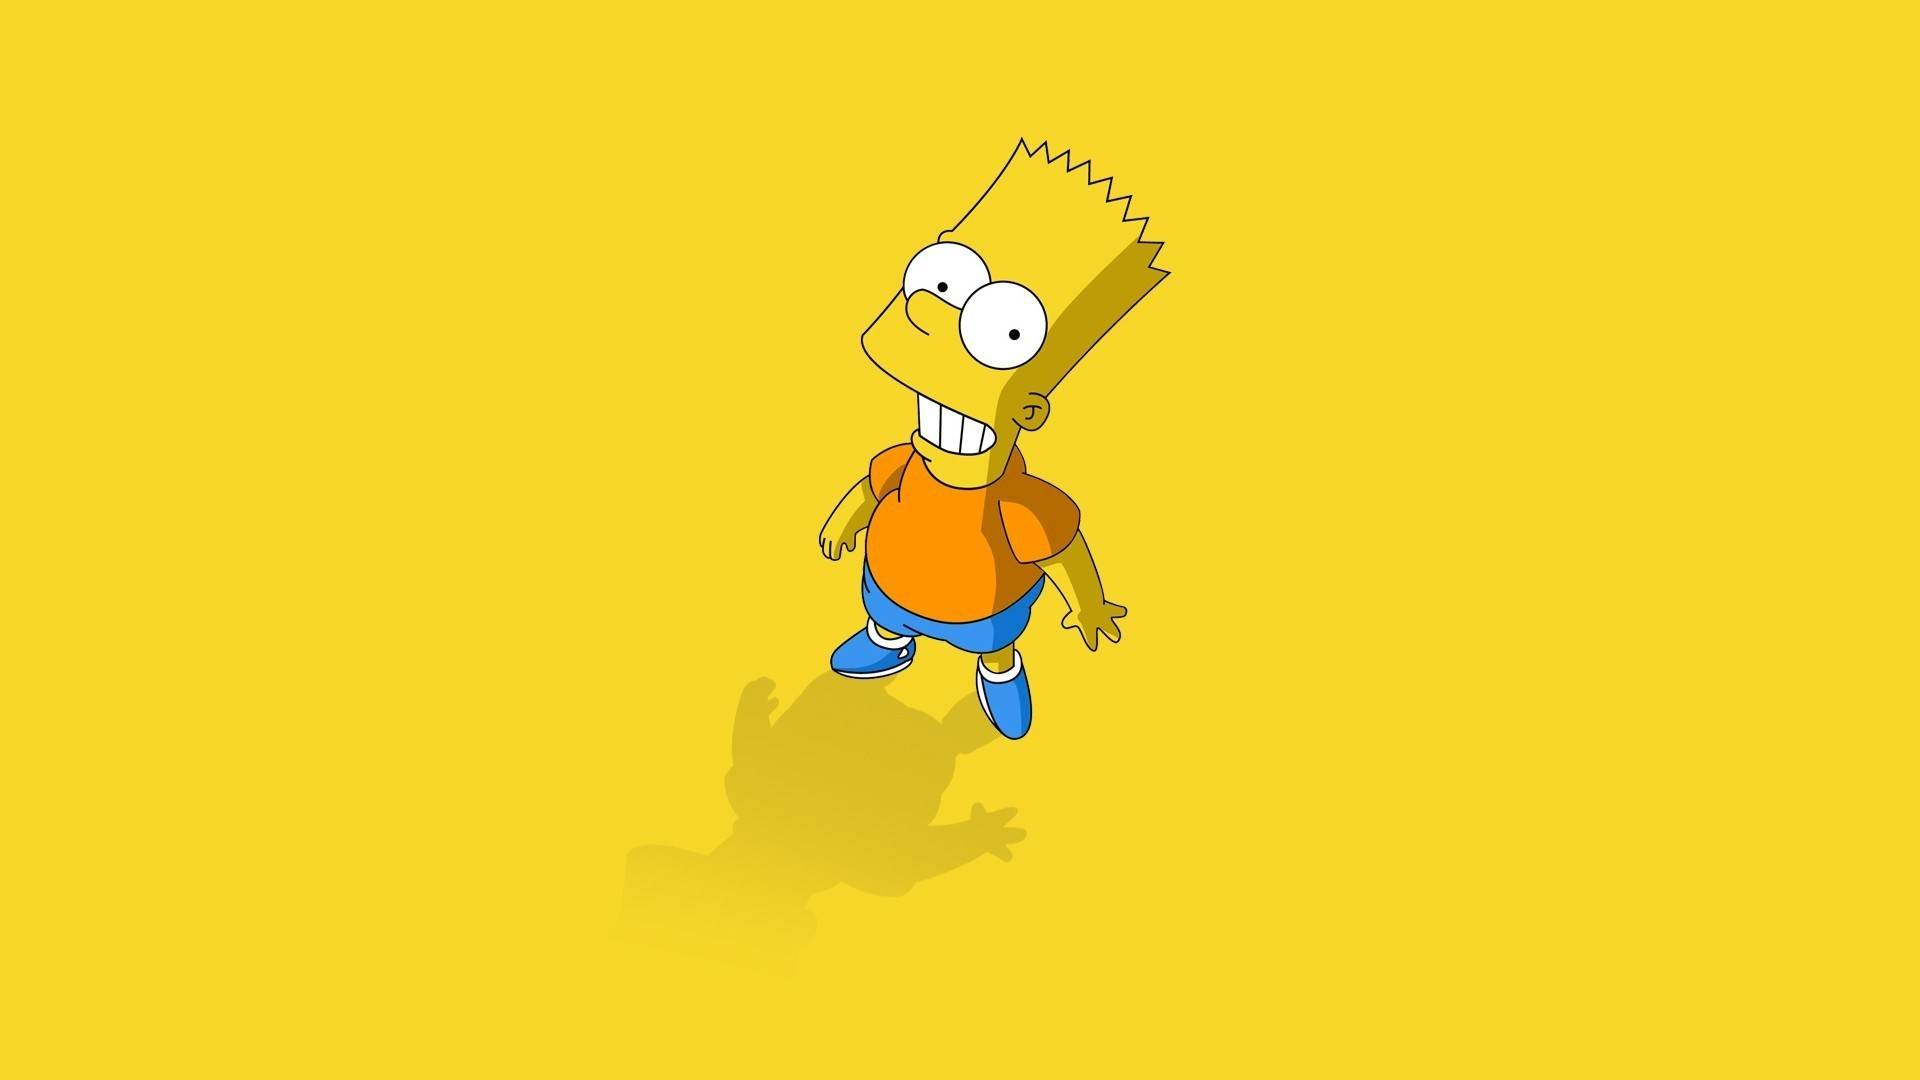 Bart Wallpaper   The Simpsons Wallpaper 1920x1080